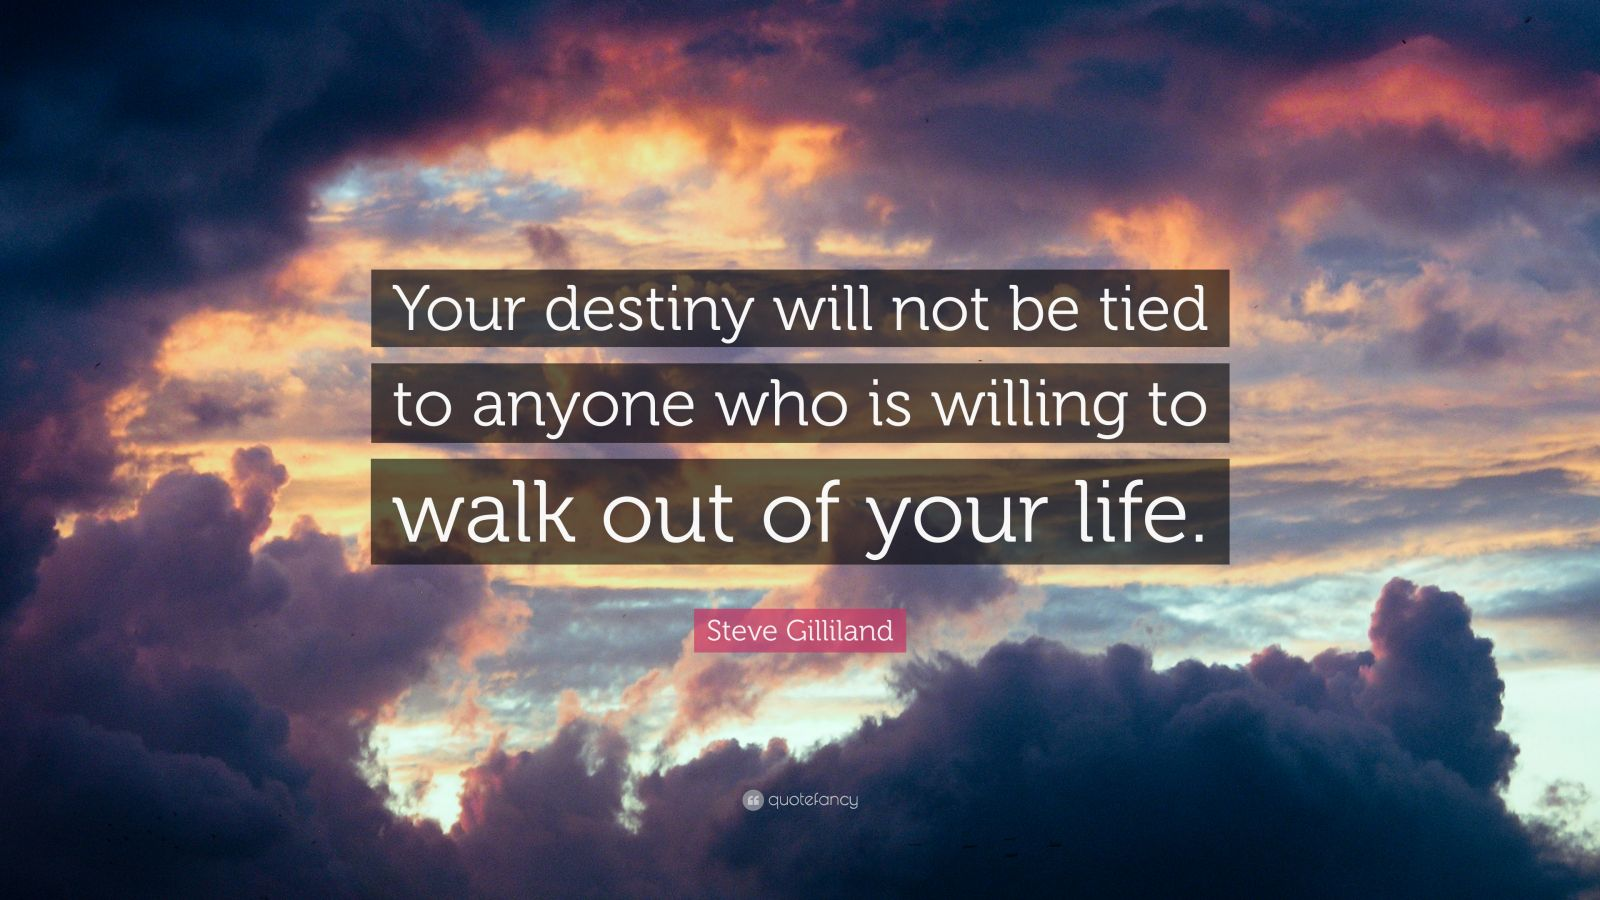 """Steve Gilliland Quote: """"Your destiny will not be tied to anyone who is willing to walk out of your life."""""""